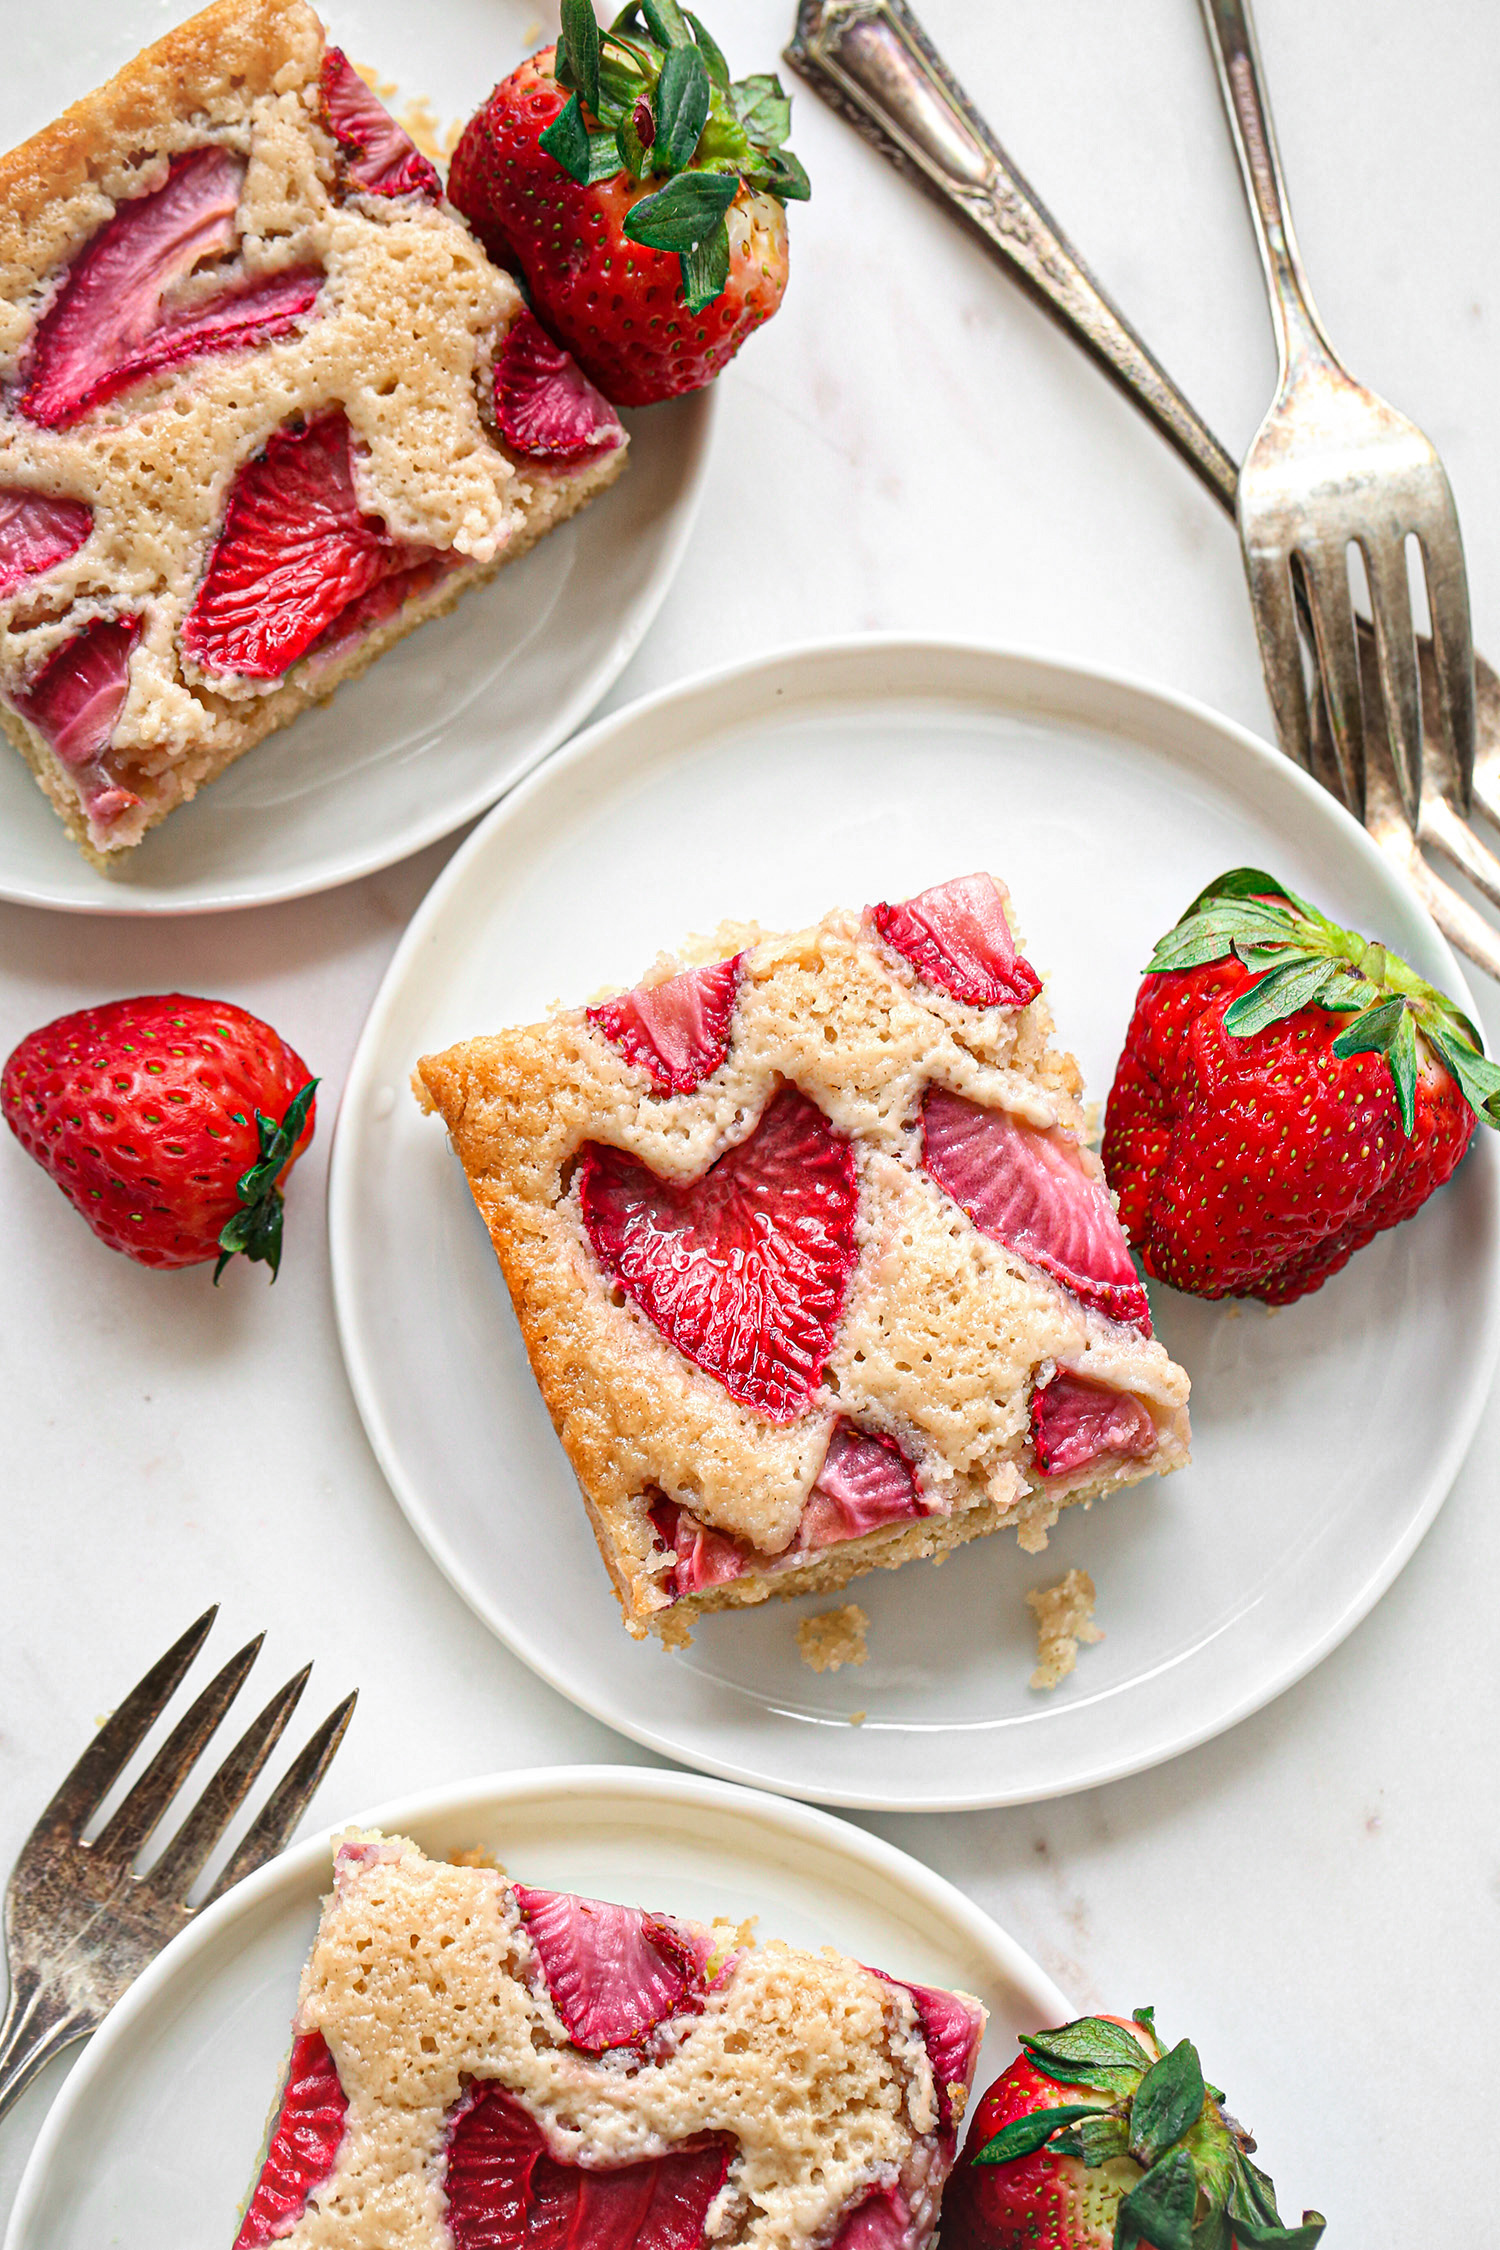 Vegan Strawberry Snack Cake Slices | Gluten-Free option included